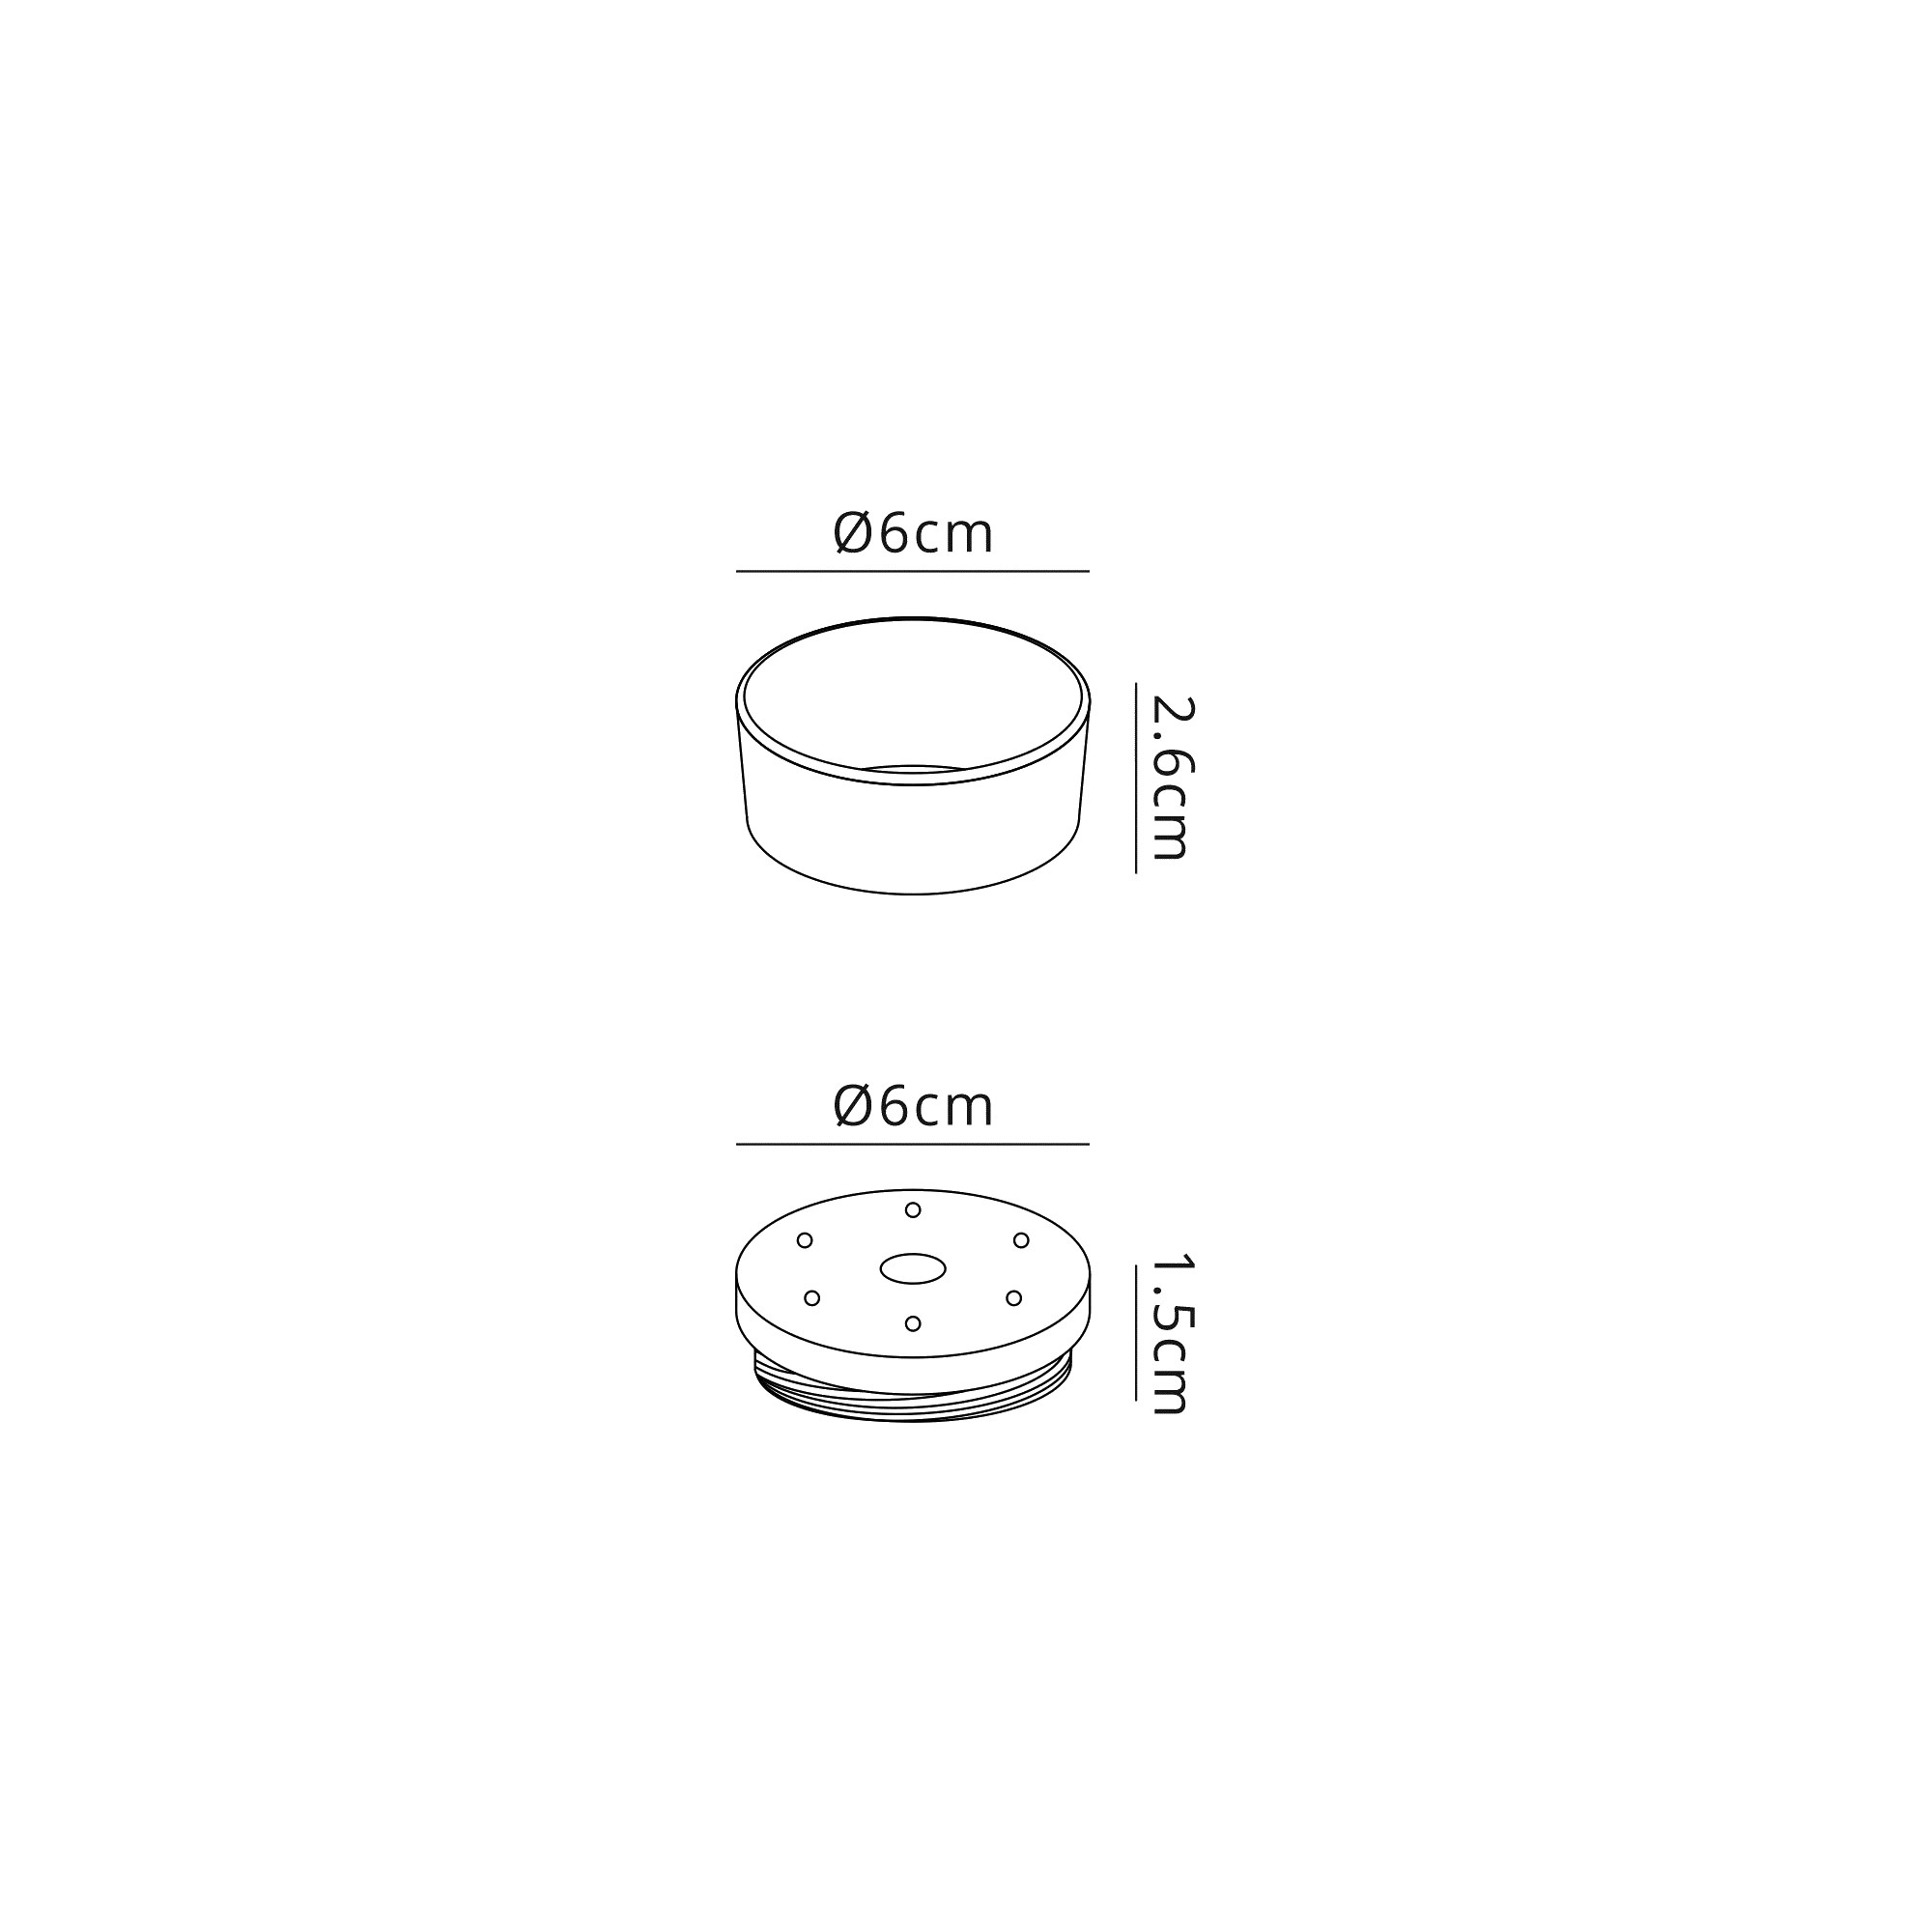 2cm Face Ring & 1cm Back Ring Accessory Pack